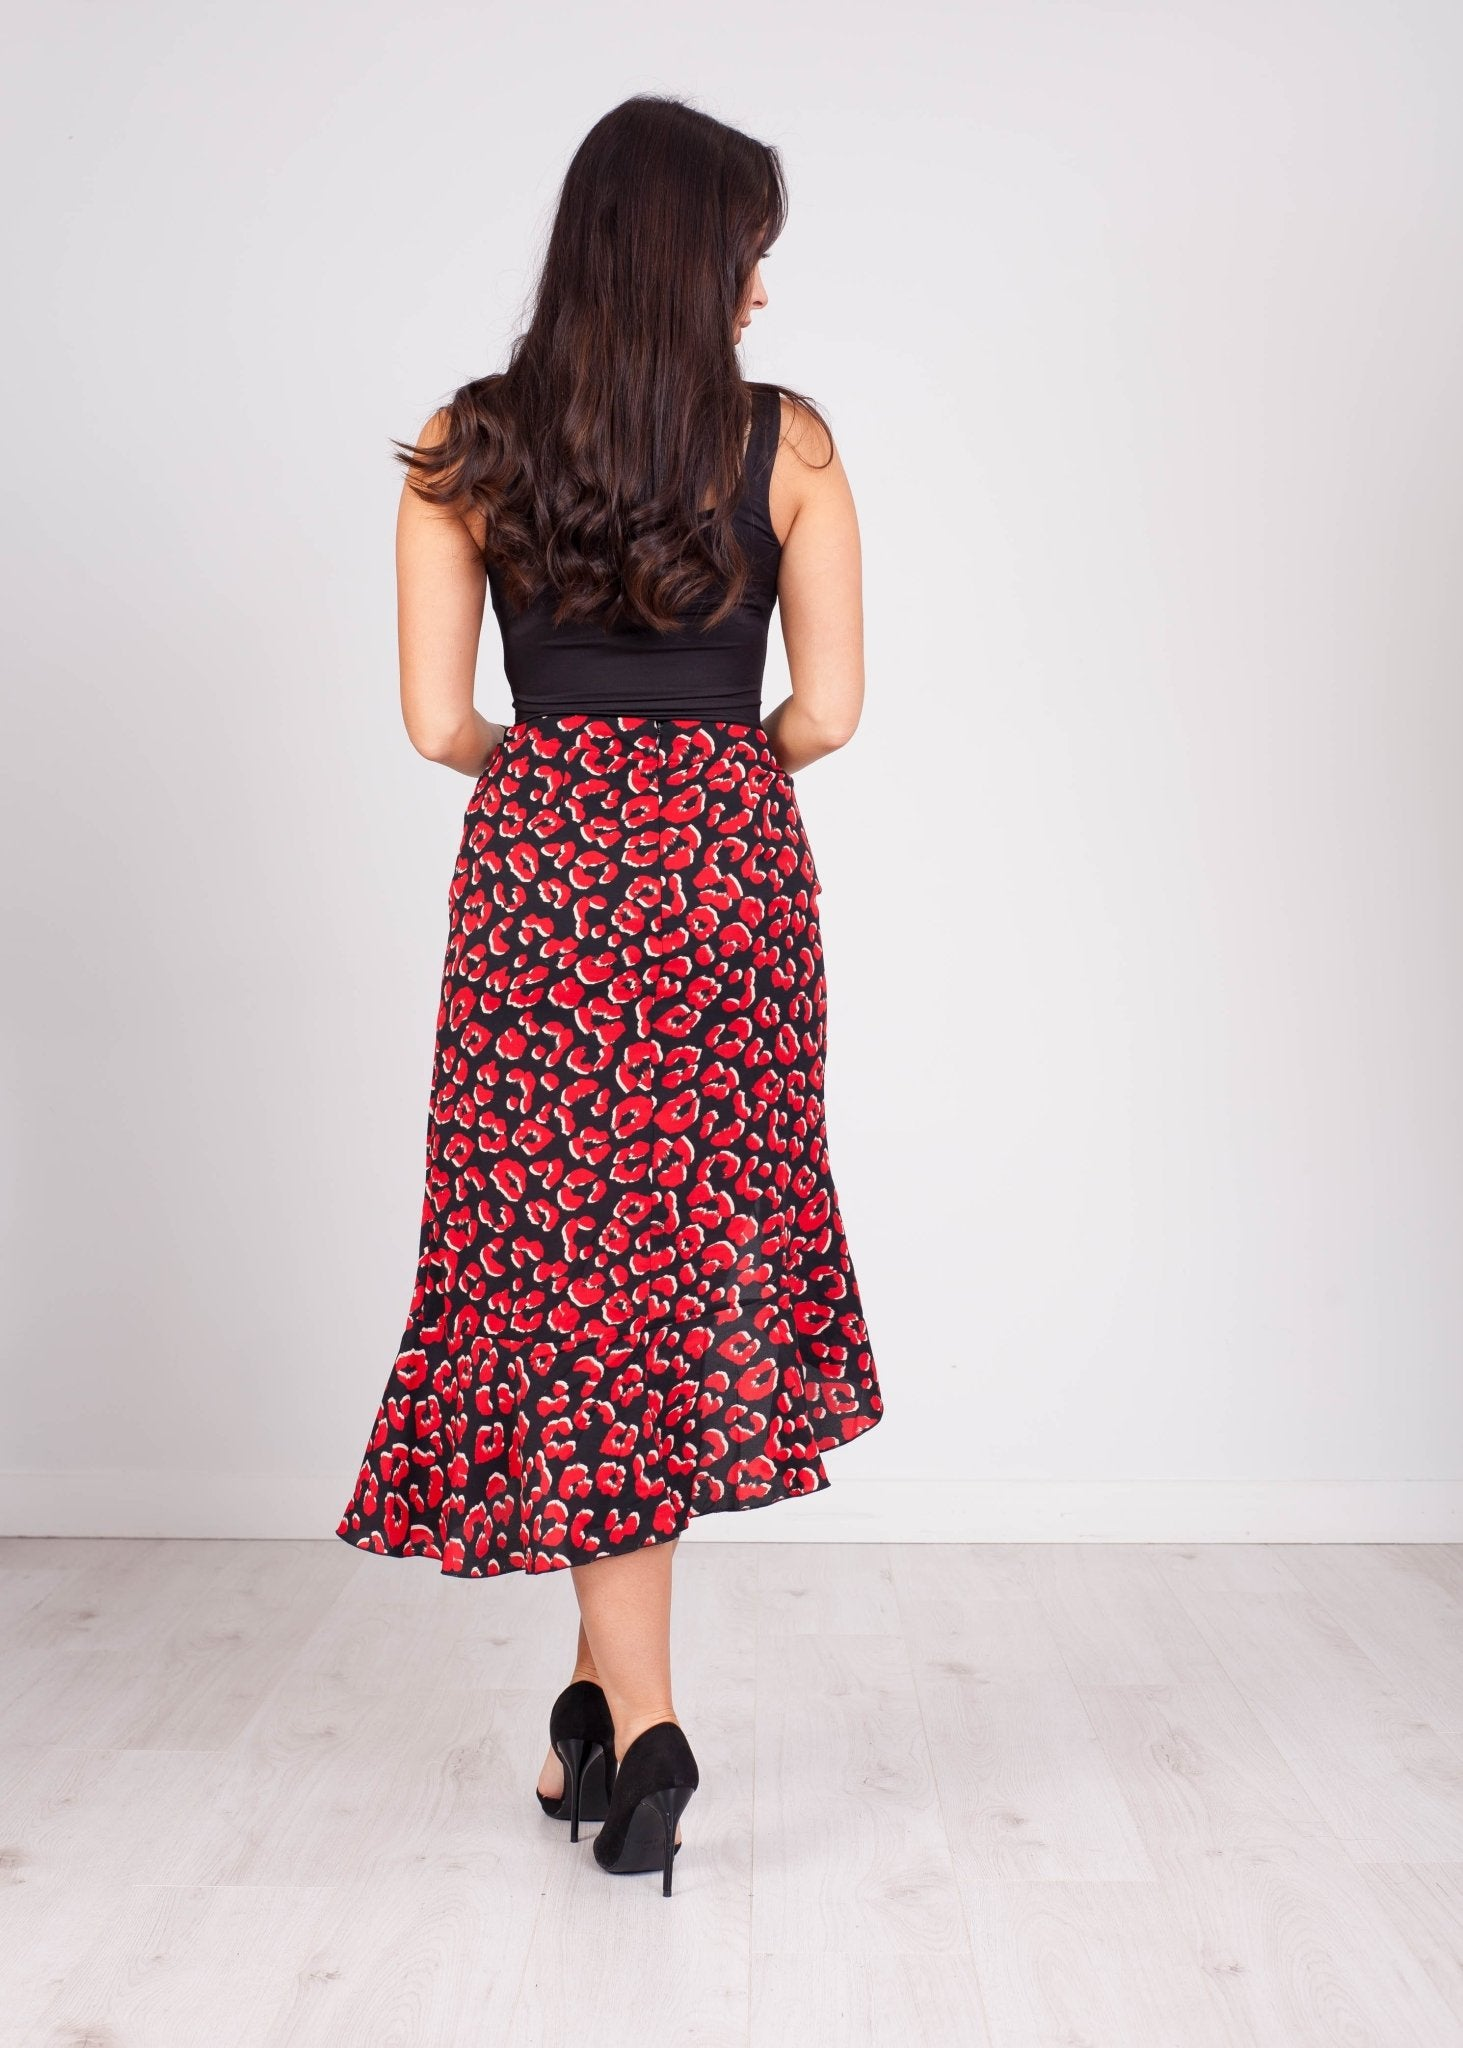 Priya Red Leopard Print Ruffle Skirt - The Walk in Wardrobe